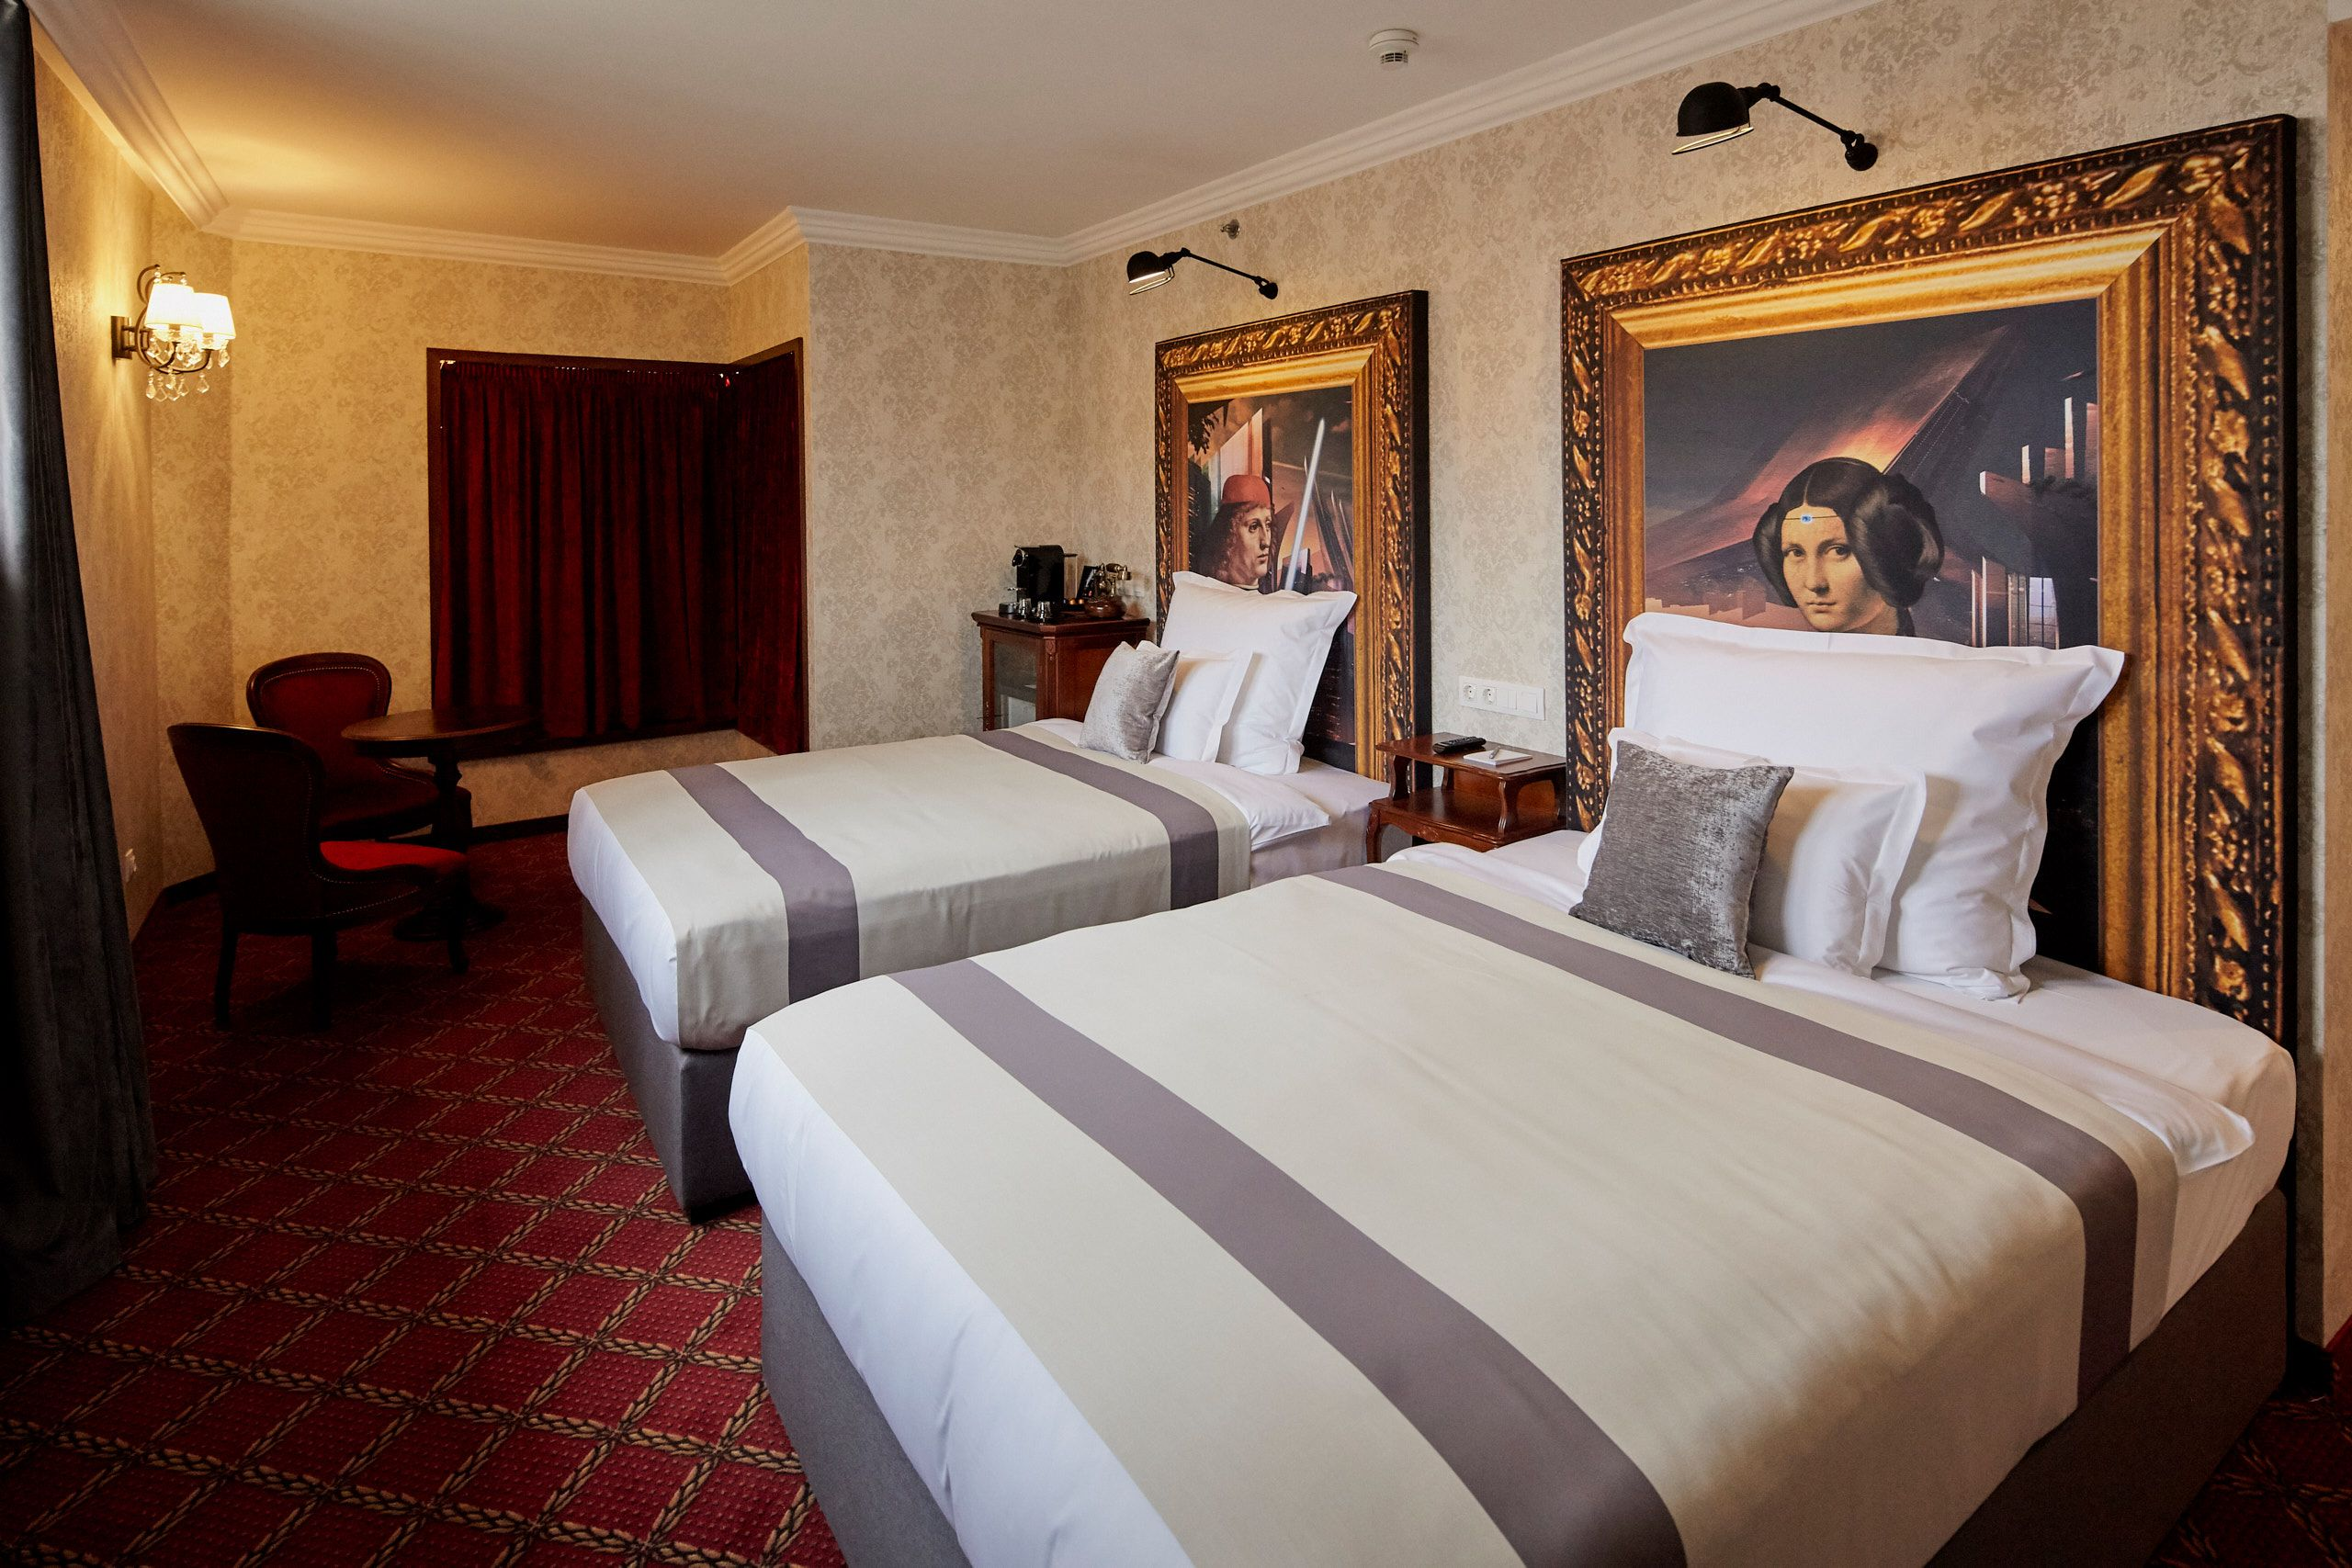 Mystery Double Double - Mystery Hotel Budapest